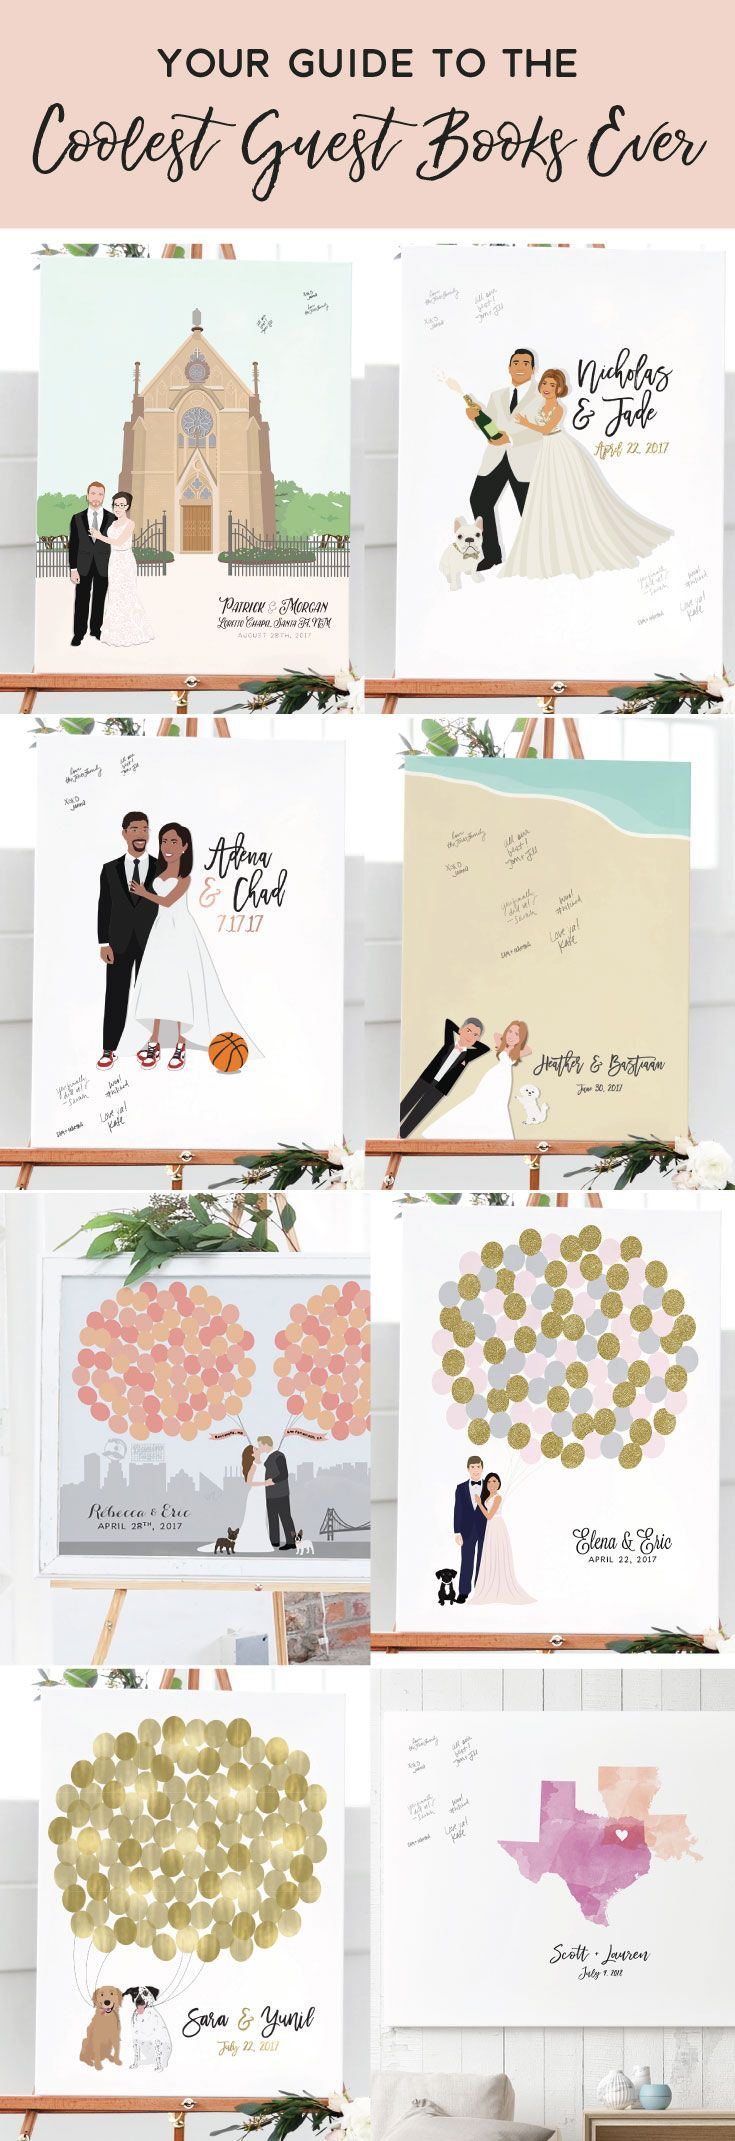 Dresses to wear to a wedding as a guest in april  Shop the coolest wedding guest books ever Every detail in these